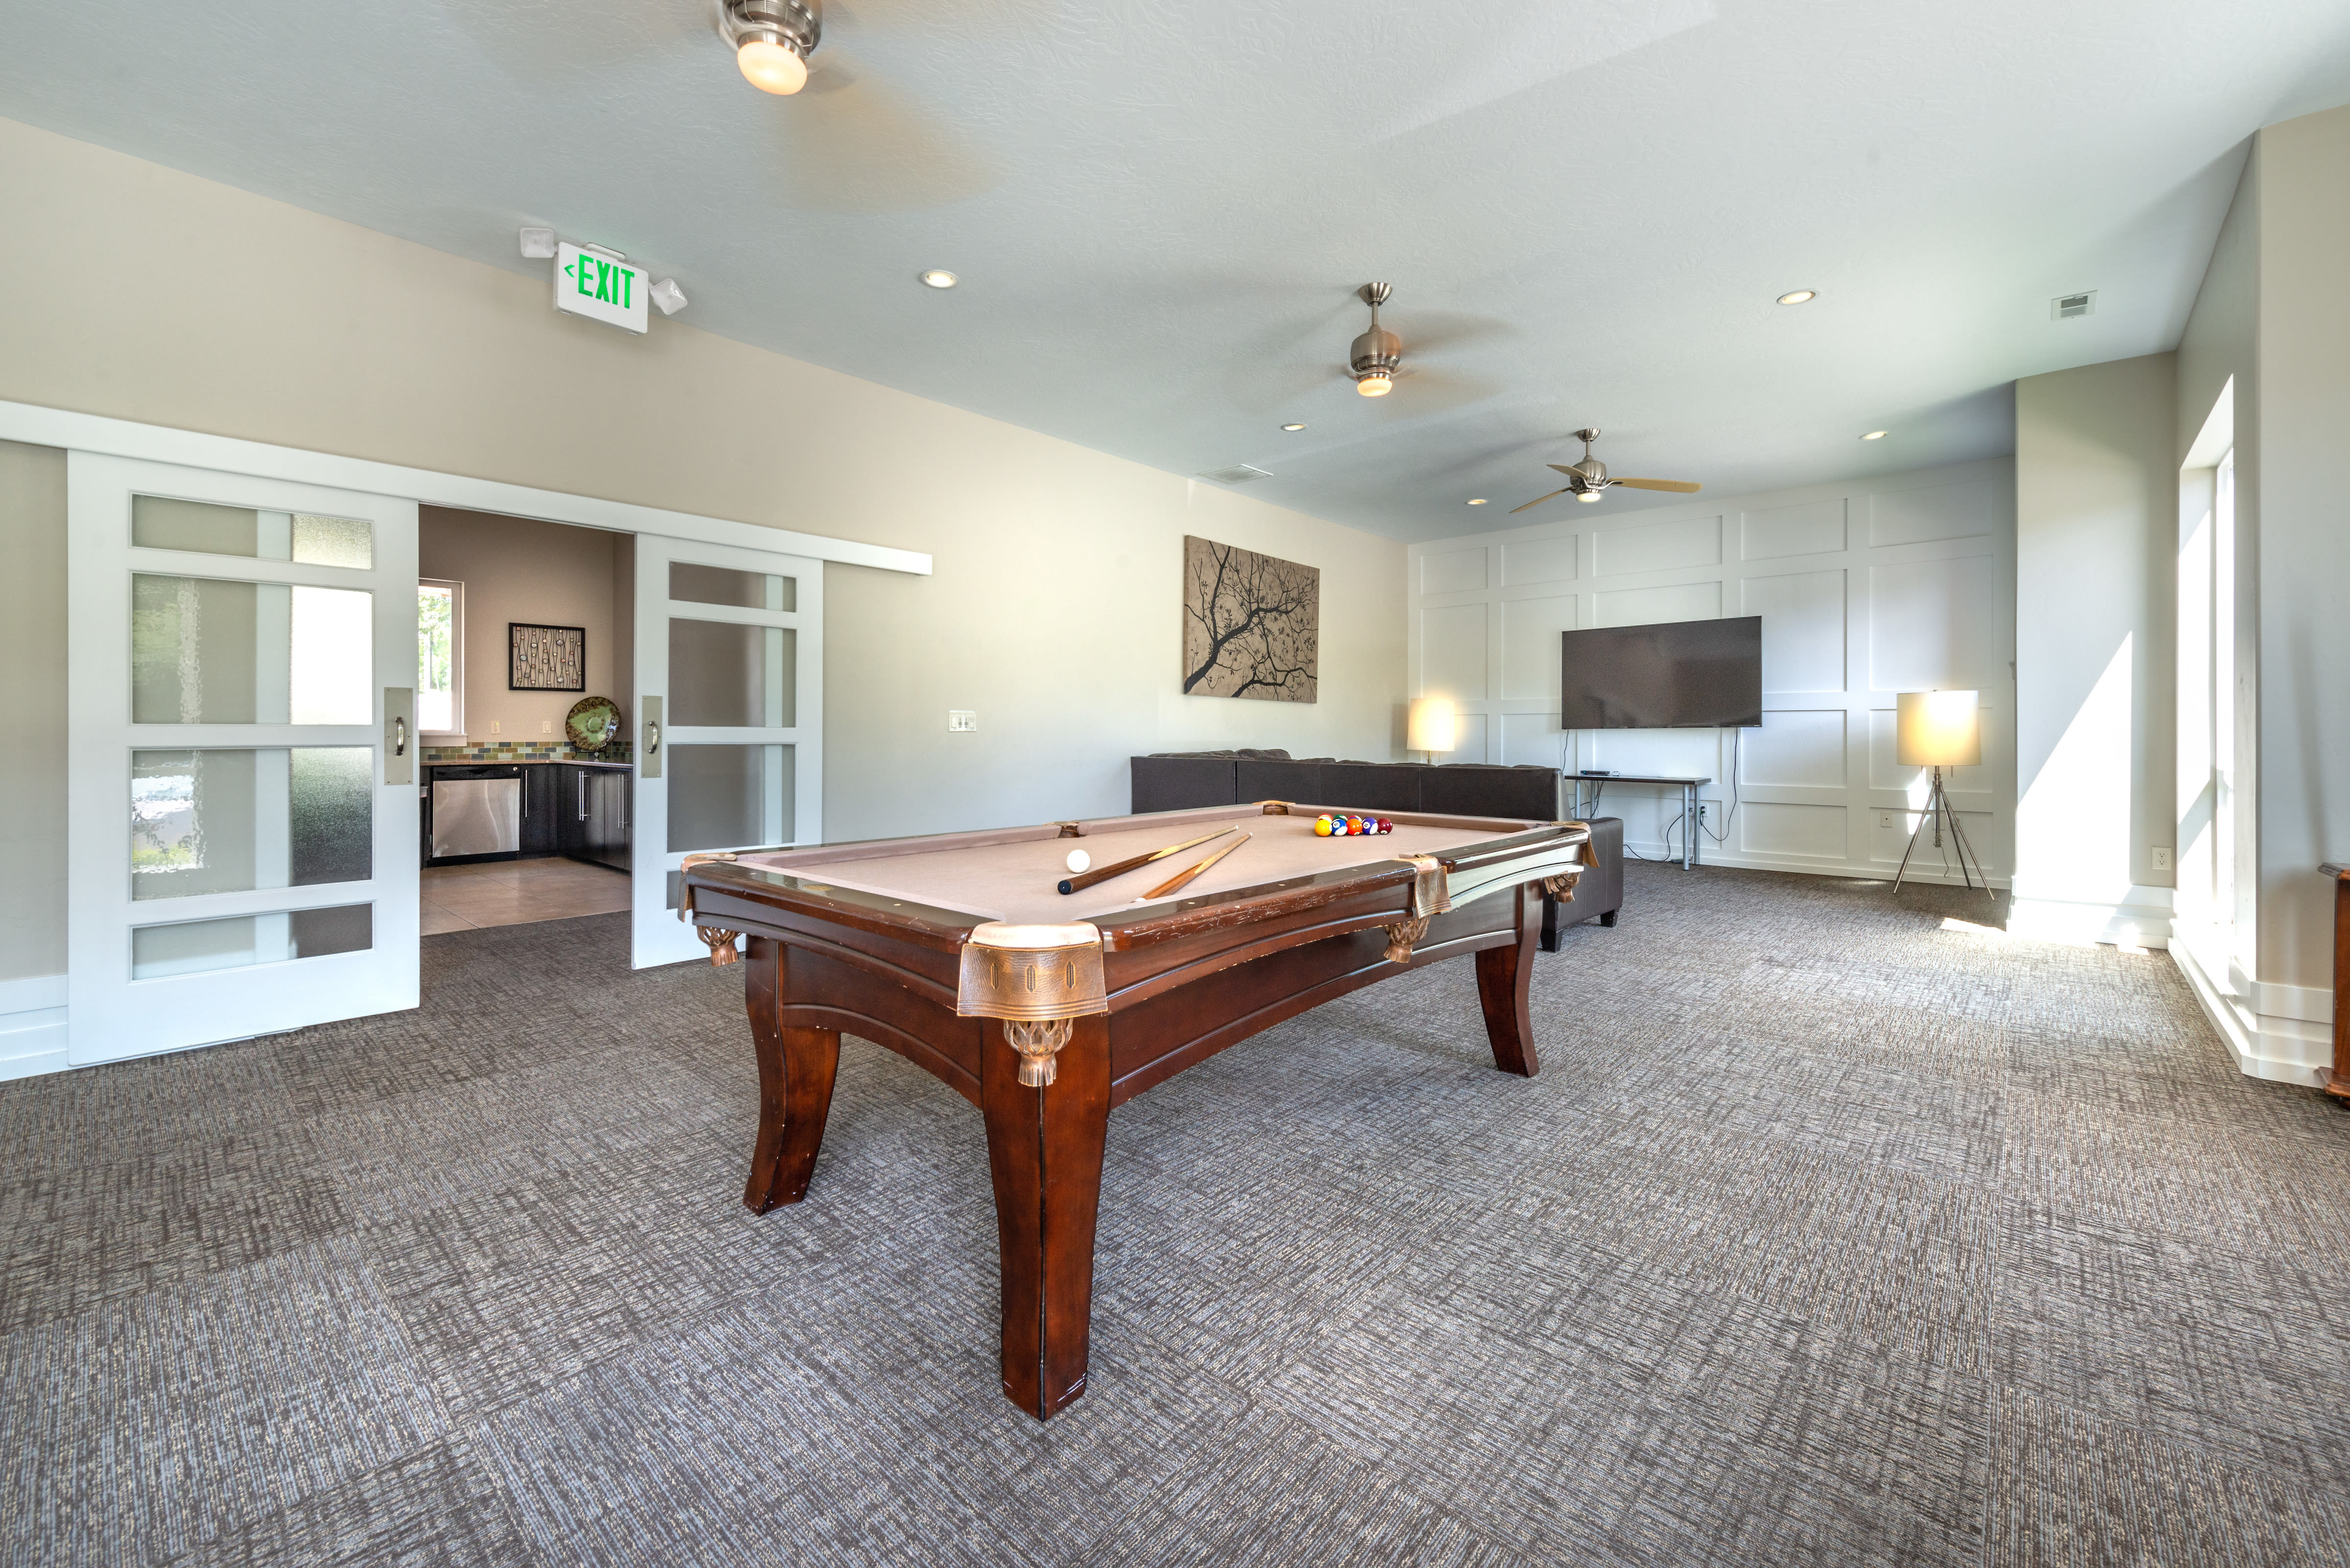 Clubhouse featuring a billiards table and other games at Olympus at the District in South Jordan, Utah